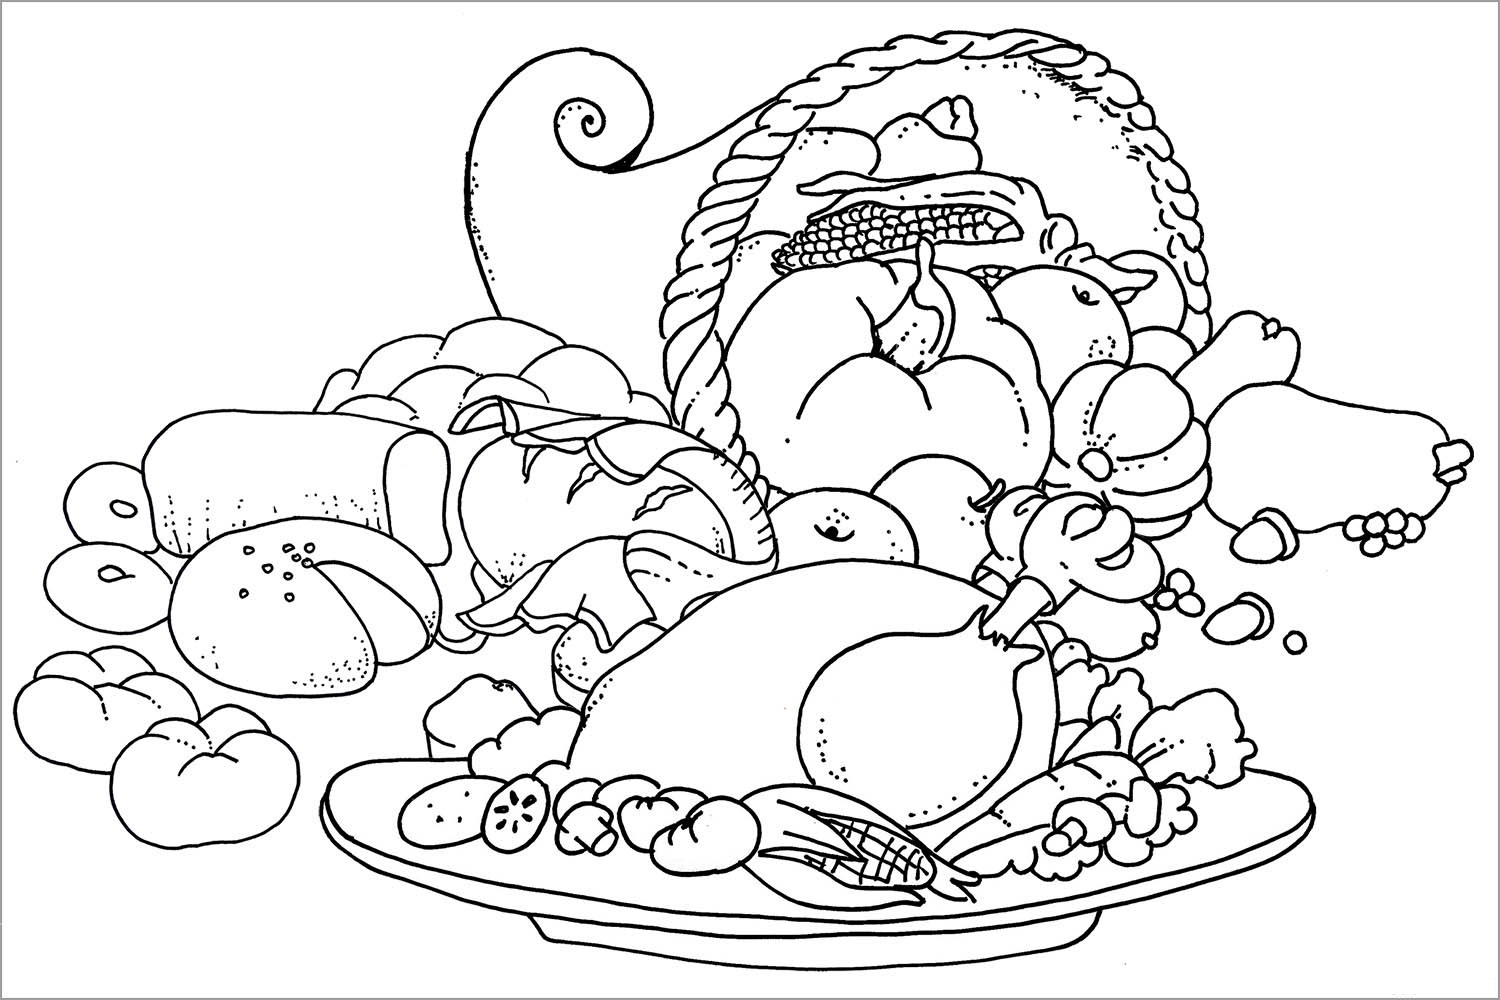 Turkey Dinner Coloring Page At Getcolorings